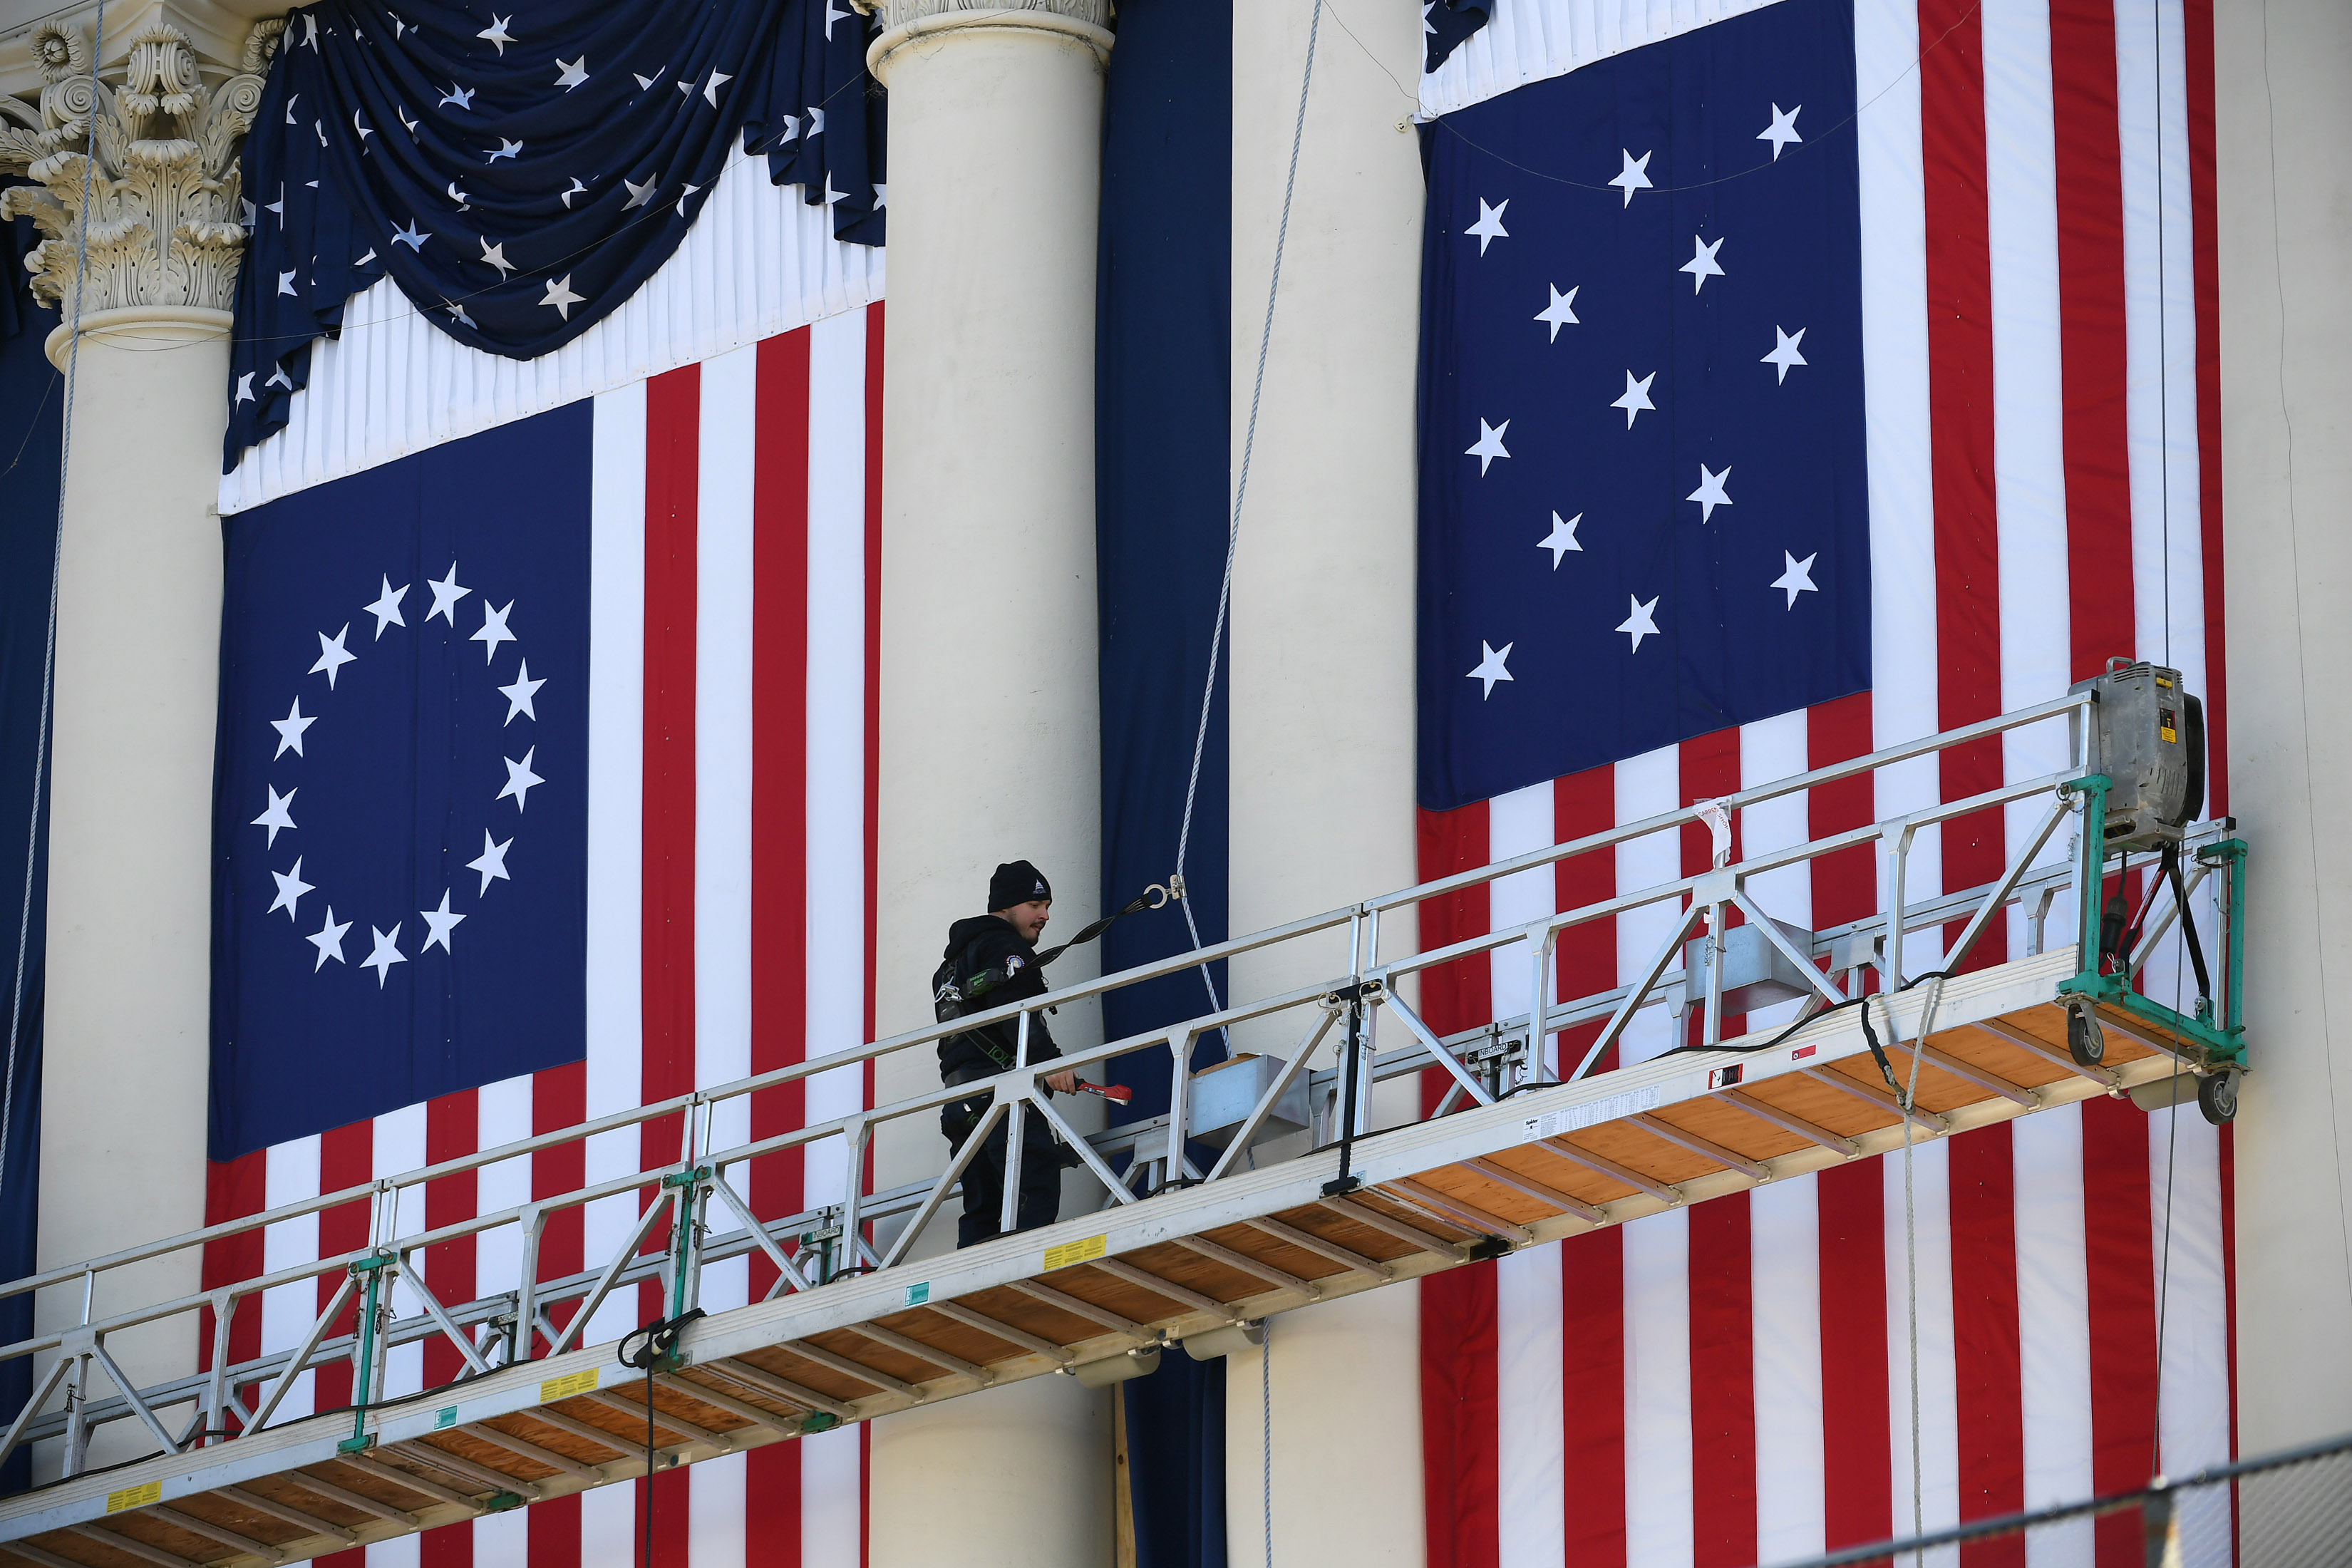 A worker prepares for Donald Trump's presidential inauguration at the U.S. Capitol during a rehearsal on Sunday. MUST CREDIT: Washington Post photo by Matt McClain